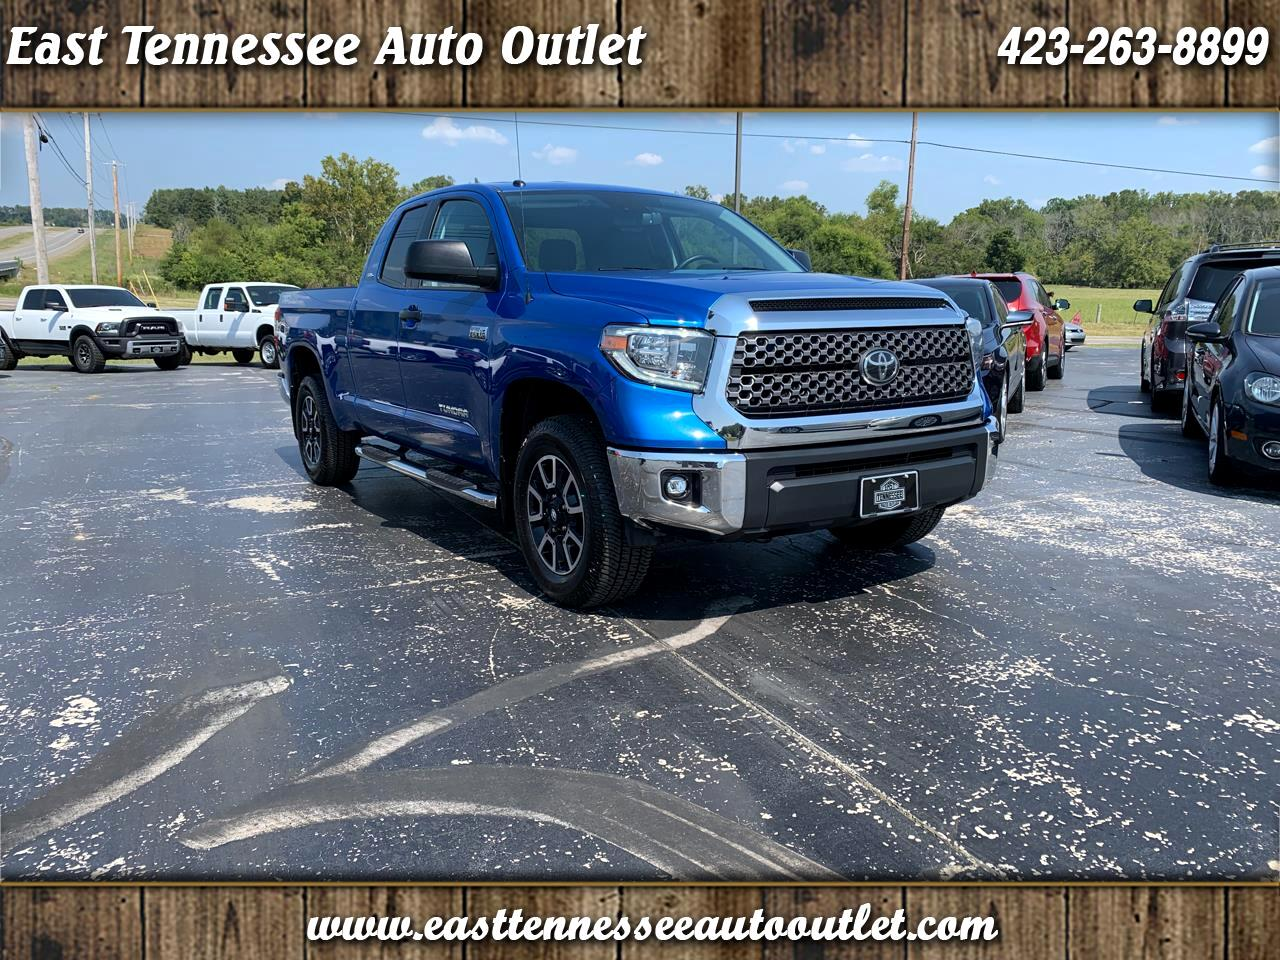 2018 Toyota Tundra 4WD Limited Double Cab 6.5' Bed 5.7L (Natl)